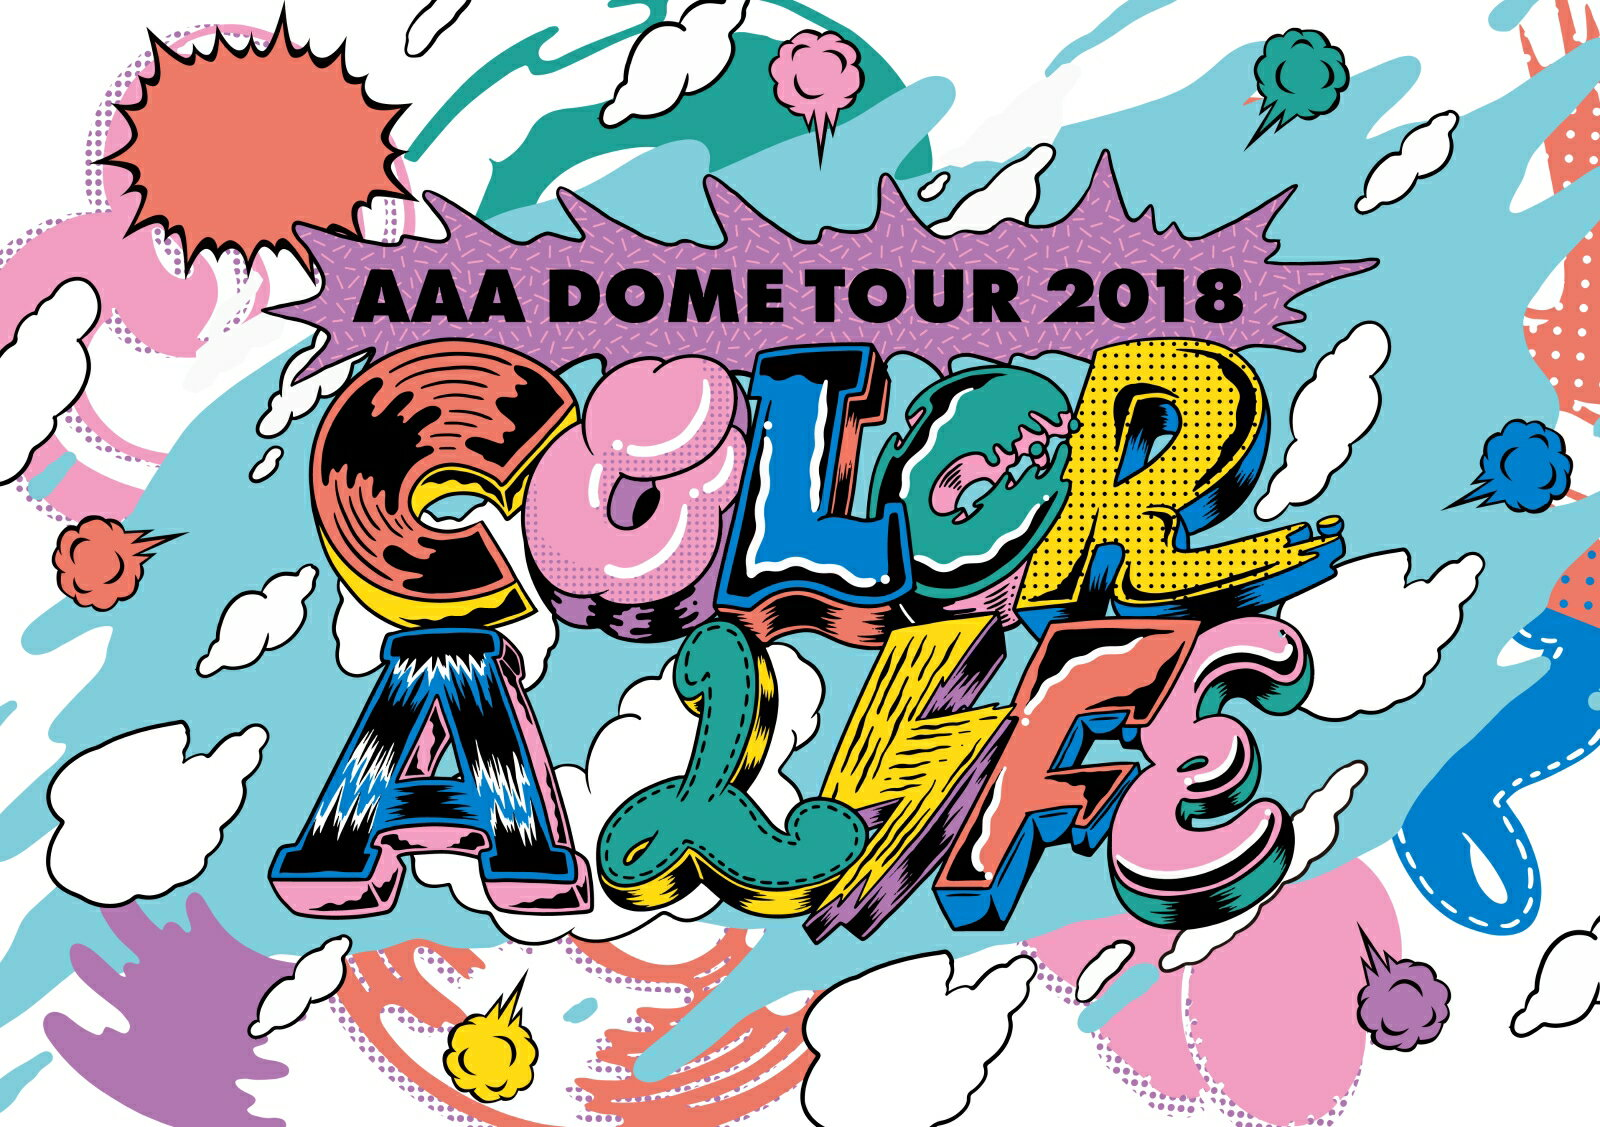 AAA DOME TOUR 2018 COLOR A LIFE(初回生産限定盤)(スマプラ対応)【Blu-ray】画像